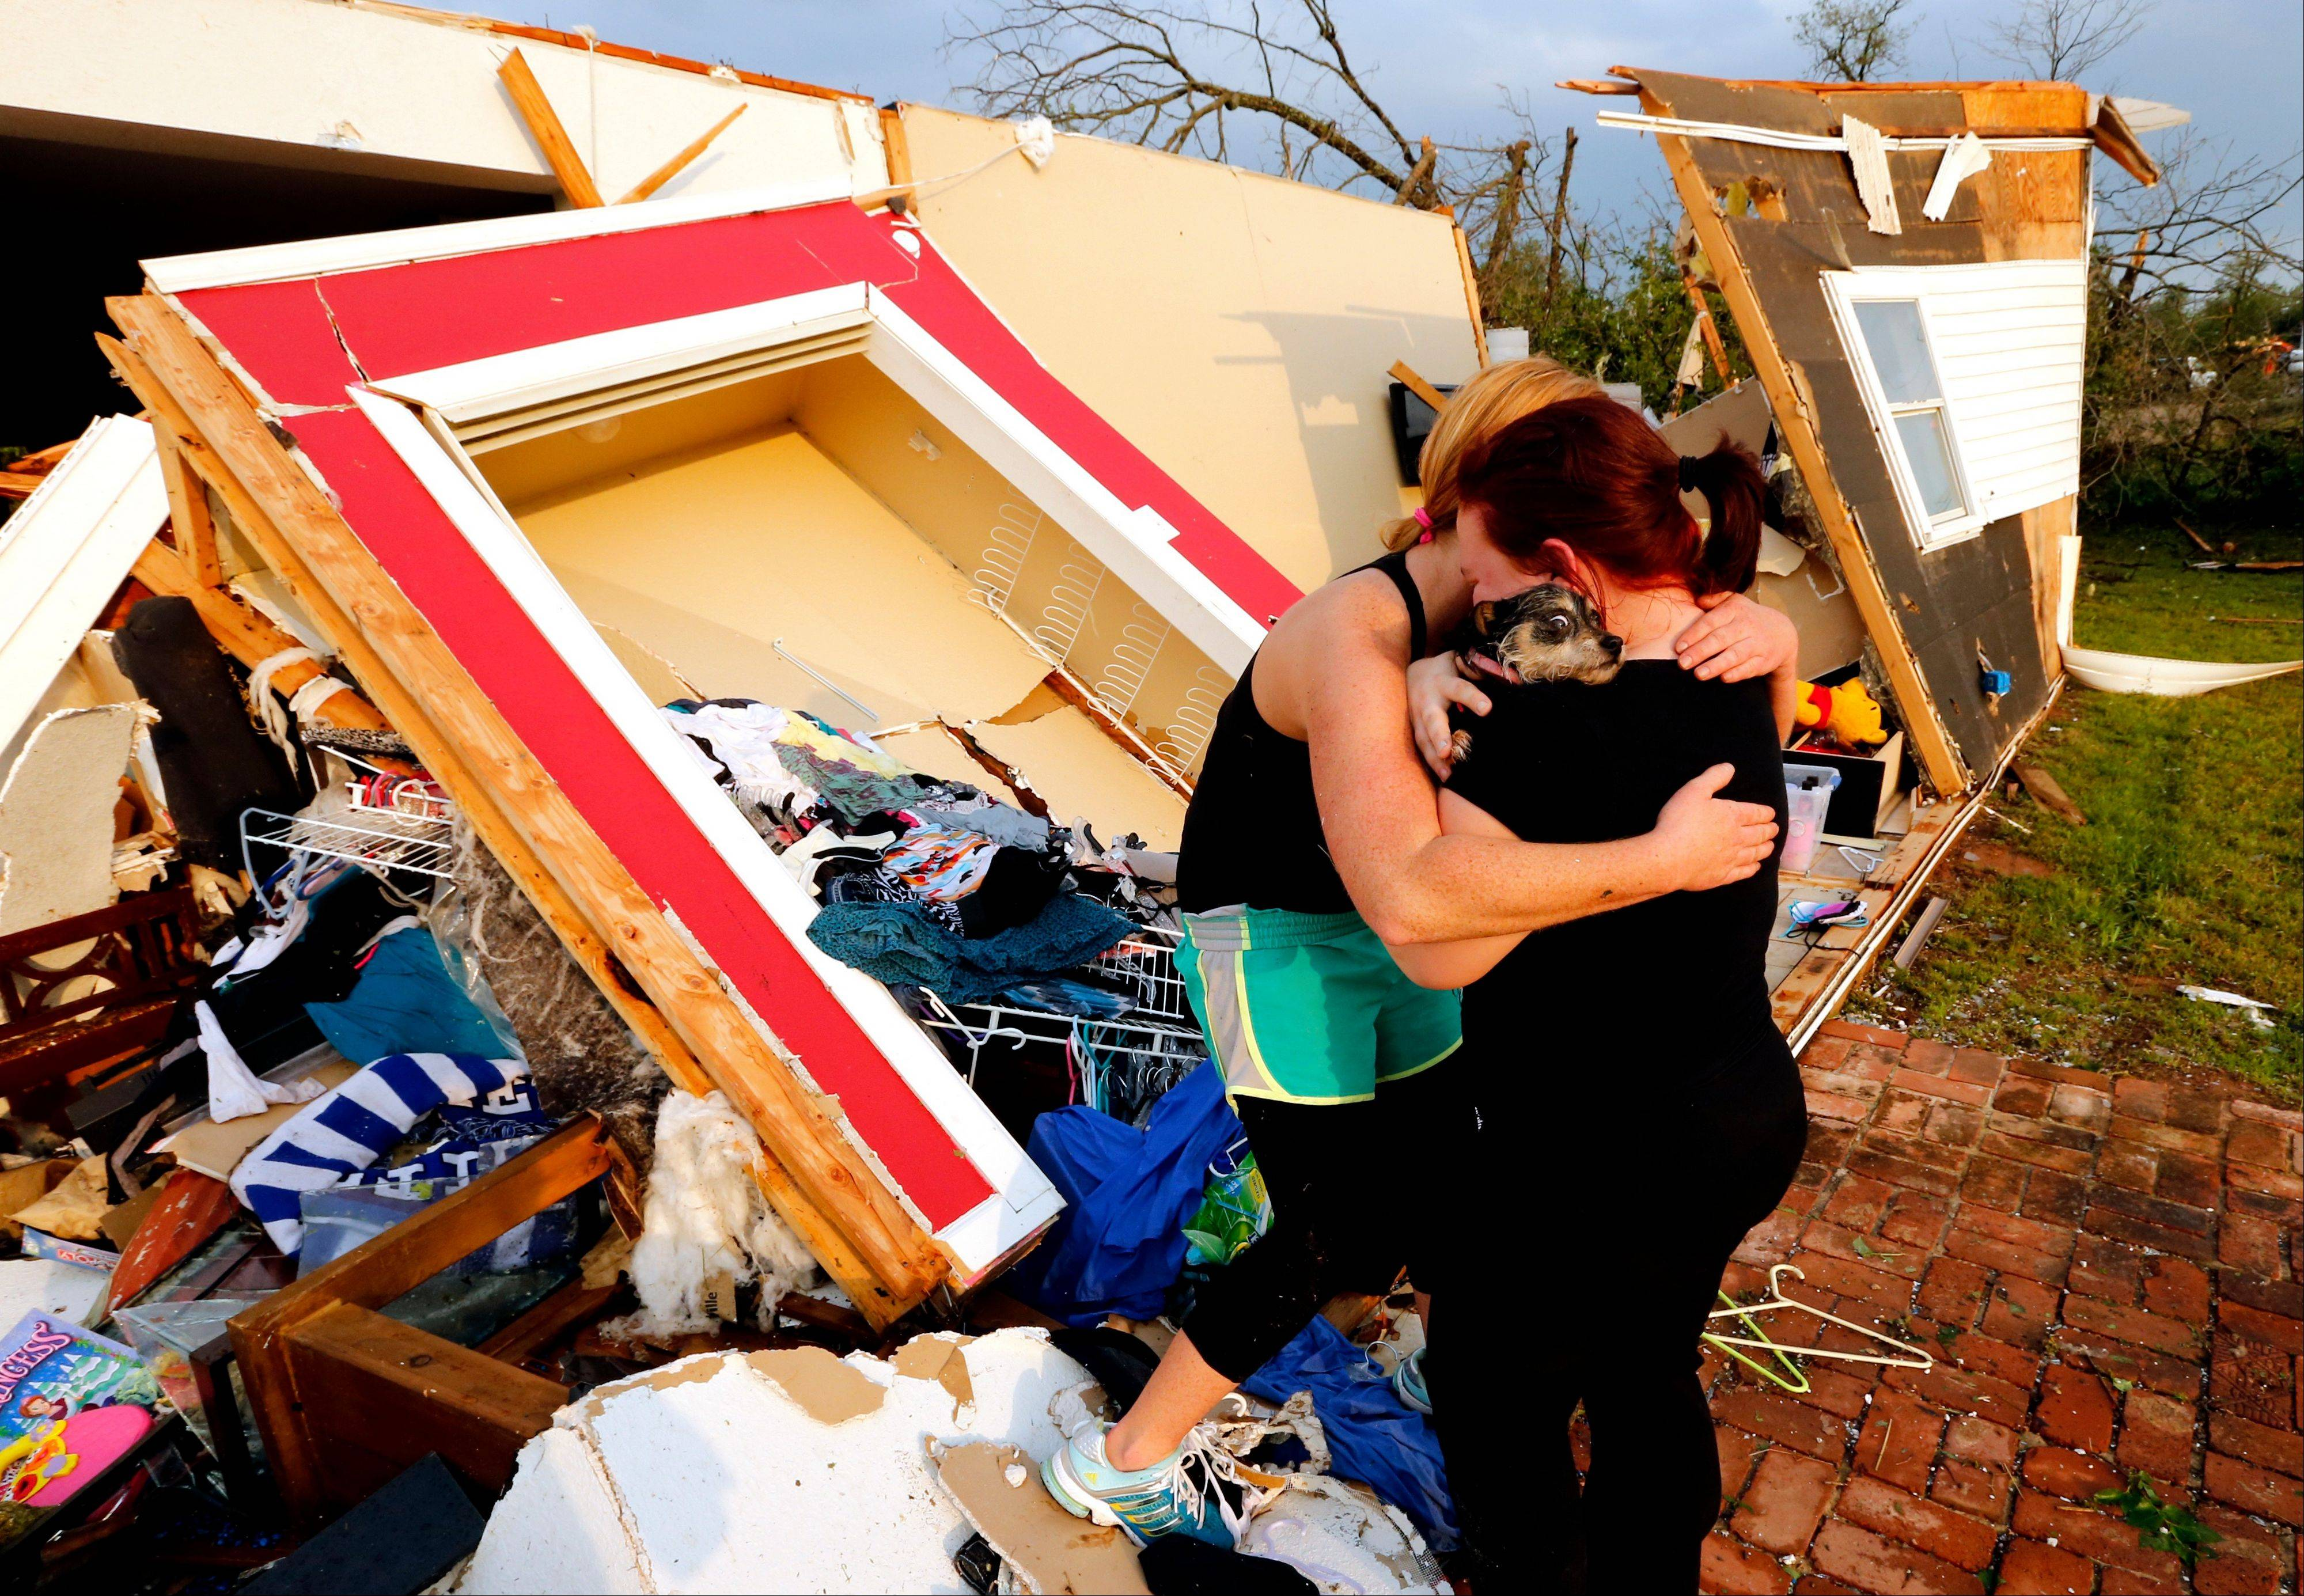 Alli Christian, left, returns Jessica Wilkinson�s dog Bella to her after finding the pet amid the wreckage of Wilkinson�s home shortly after a tornado struck near 156th street and Franklin Road on Sunday, May 19, 2013, in Norman, Okla. No one was in the home when the storm struck.